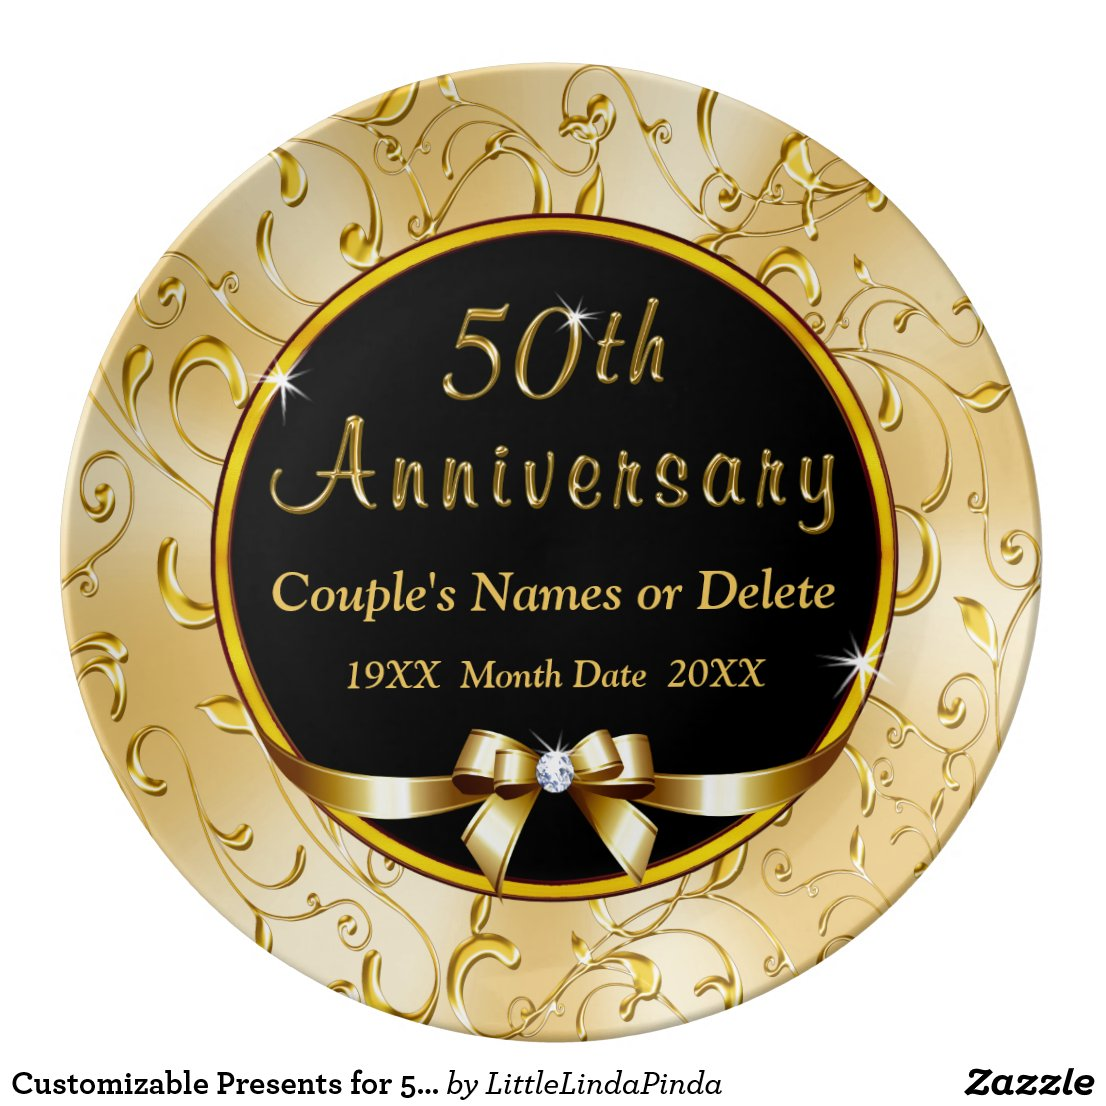 Customizable Presents for 50th Wedding Anniversary Plate